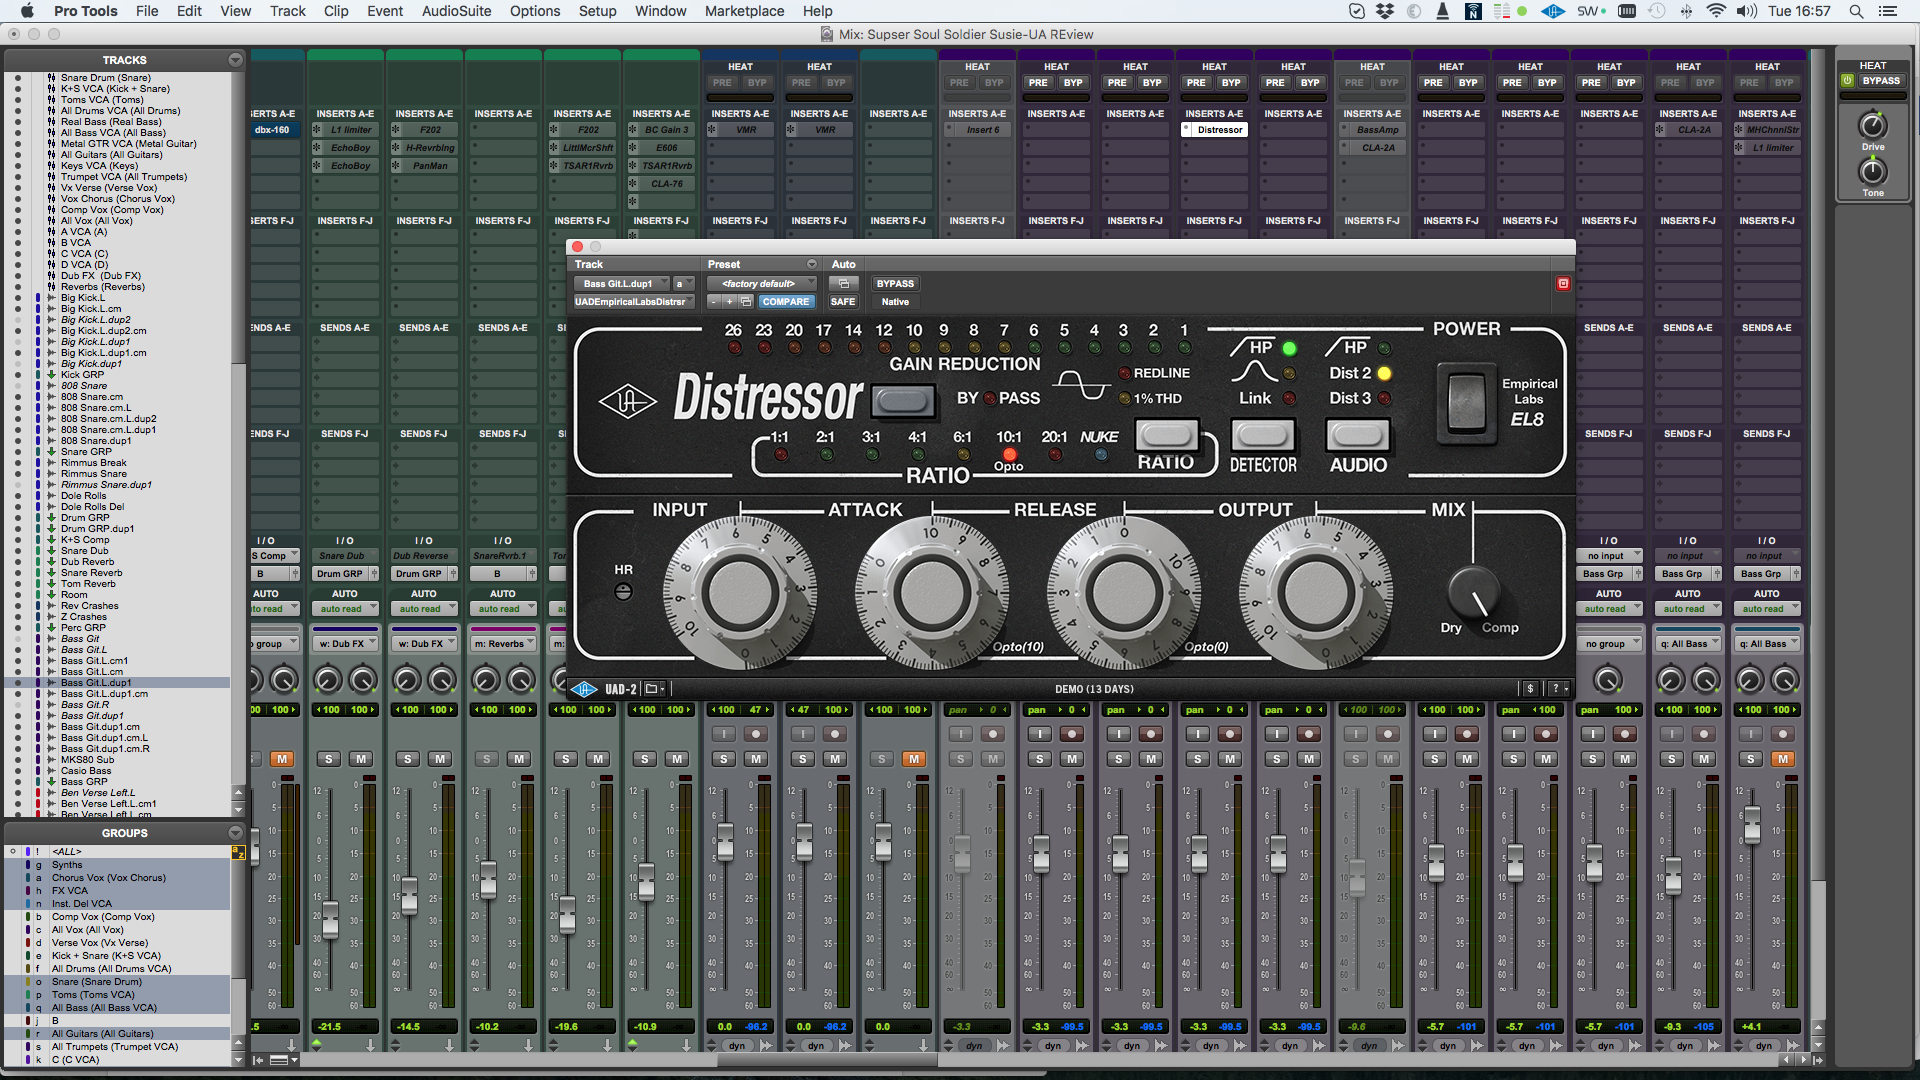 Distressor bass settings